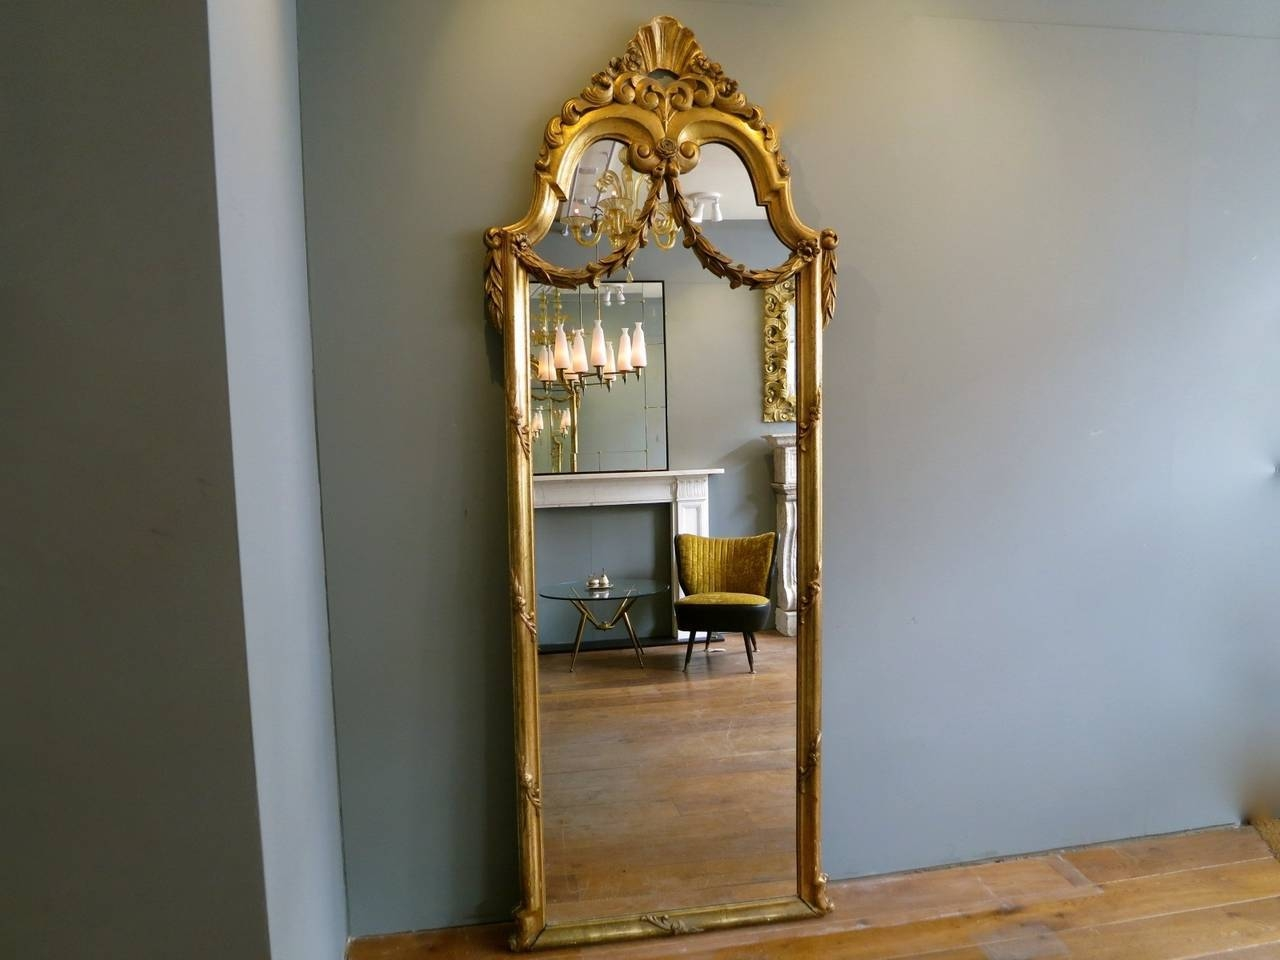 Floor mirror gold floors doors interior design for Gold frame floor mirror